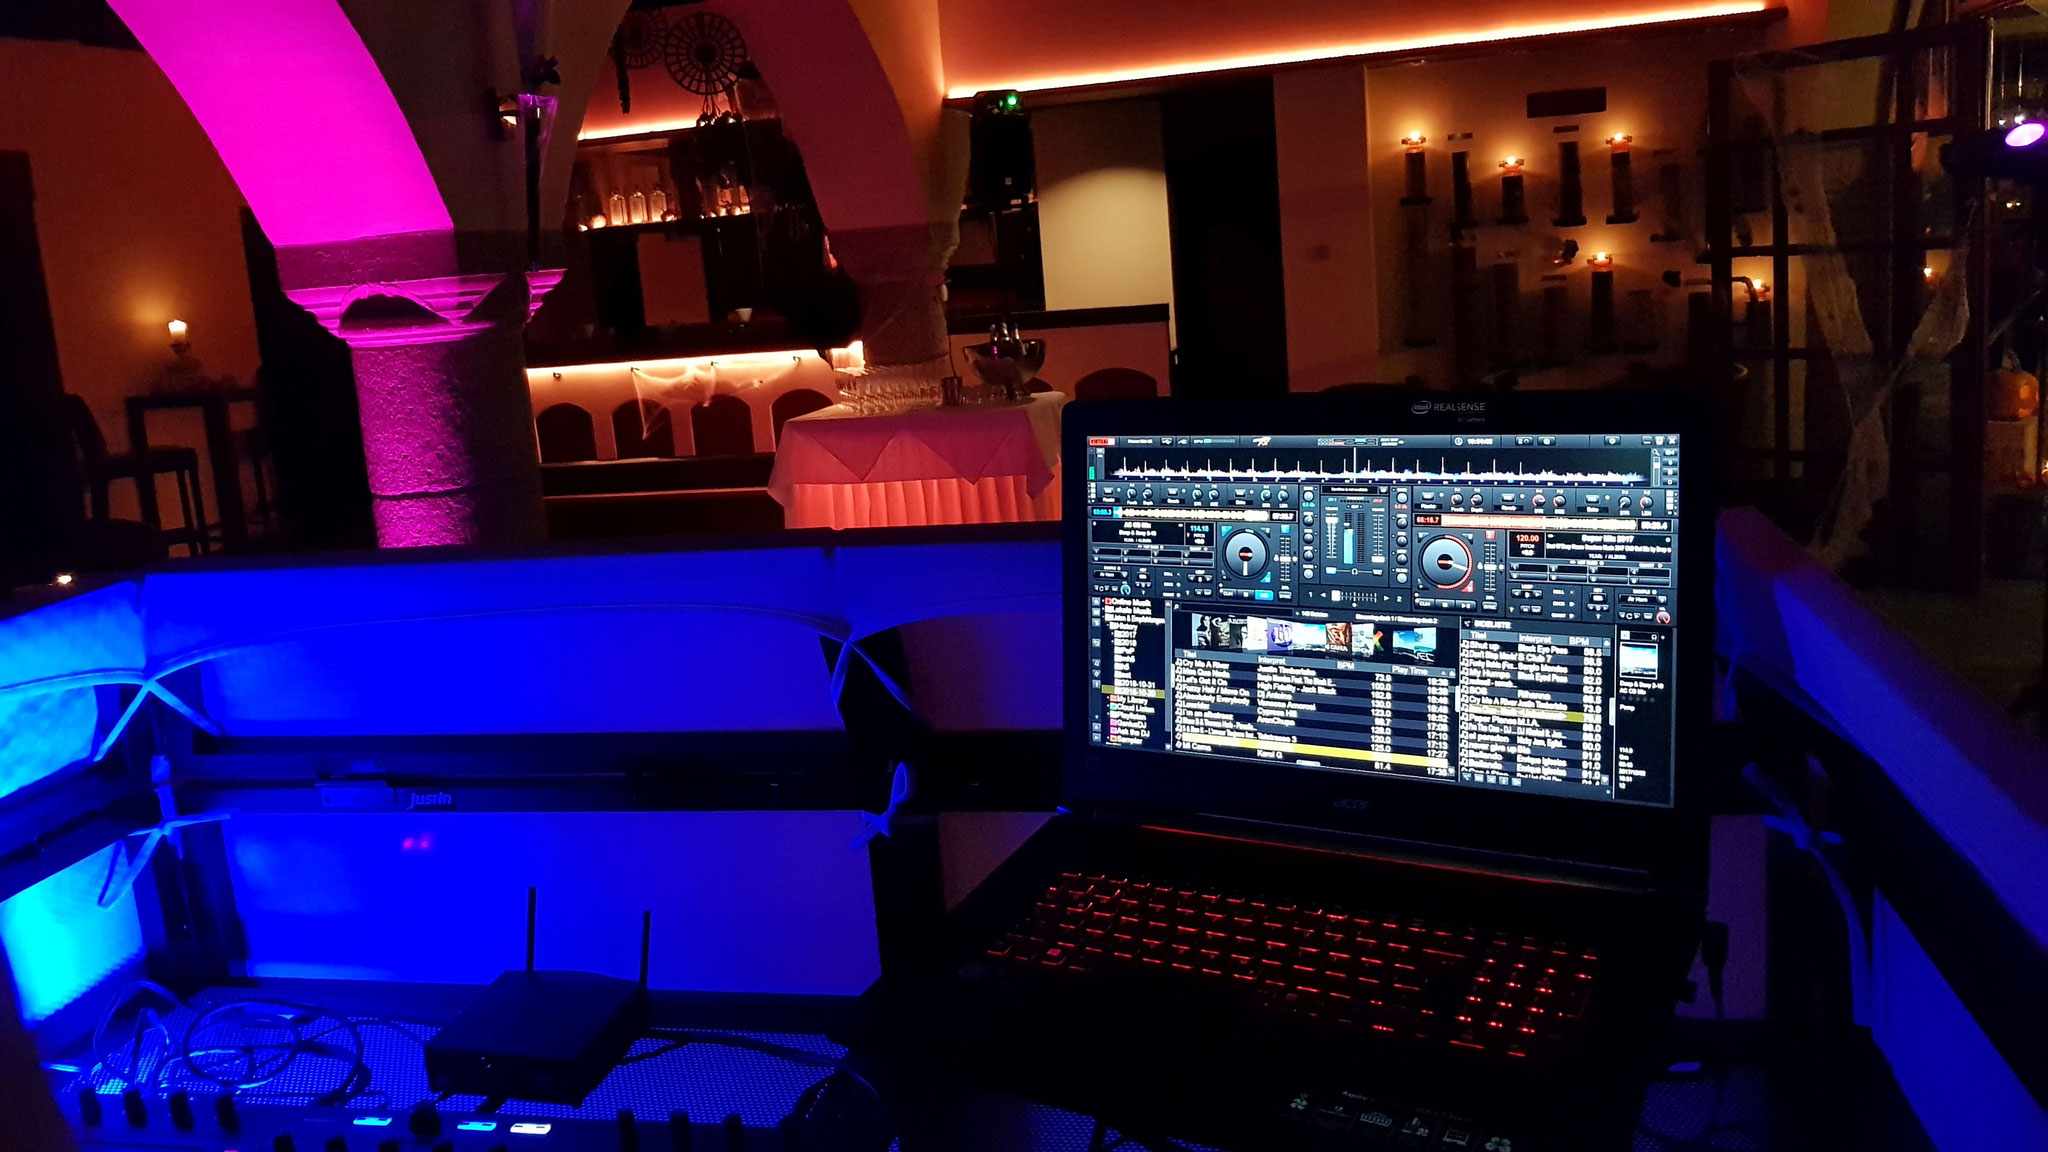 Party @ a Hotel Bar